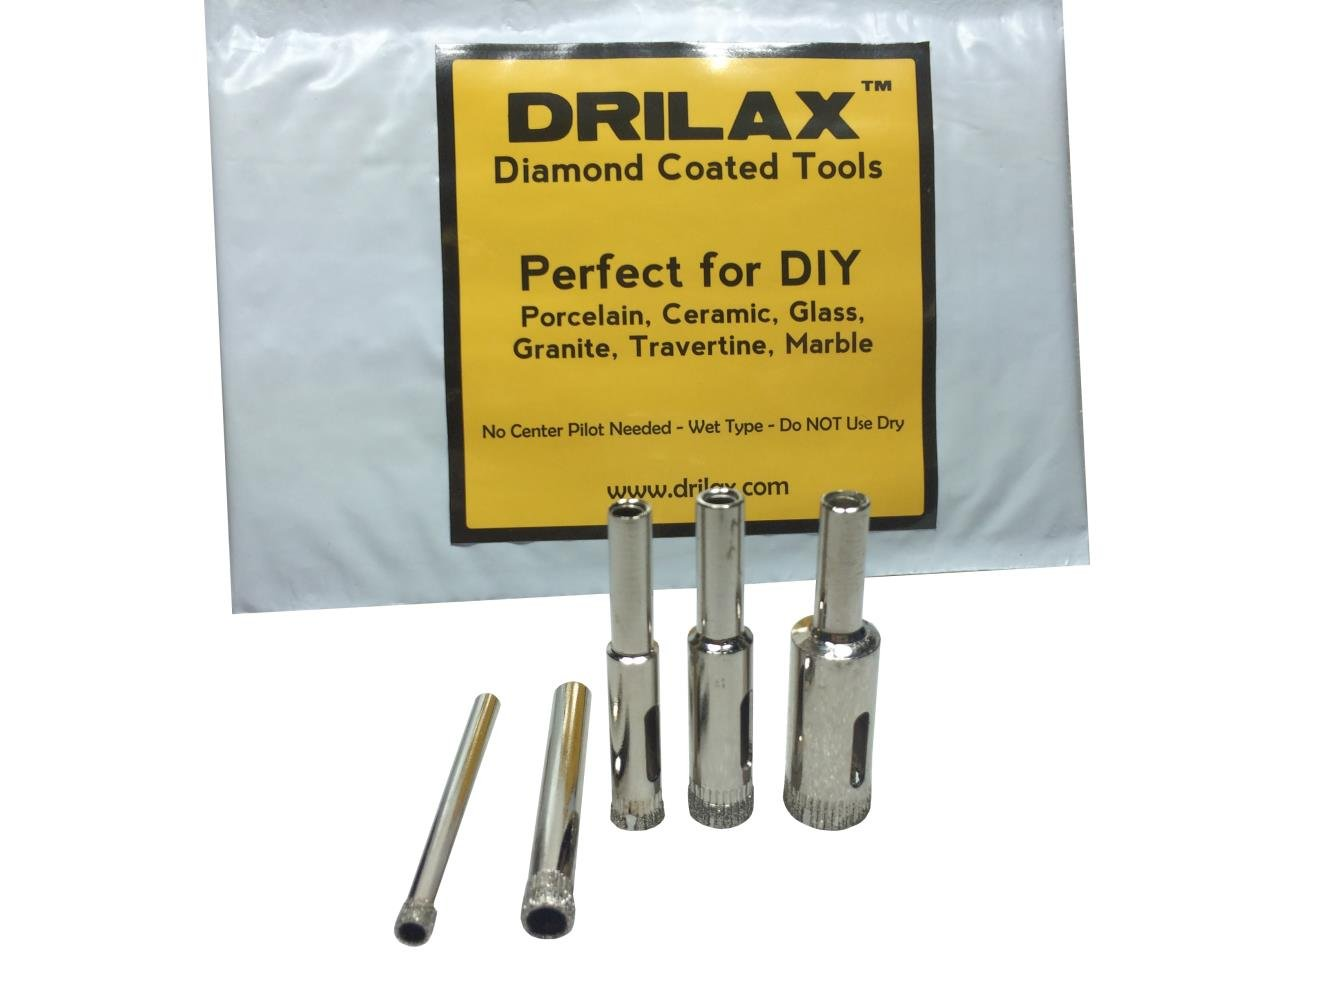 Drilax 5 pcs diamond drill bit set 316 14 516 38 12 drilax 5 pcs diamond drill bit set 316 14 516 38 12 wet use for tiles glass fish tanks marble granite ceramic porcelain bottles dailygadgetfo Gallery